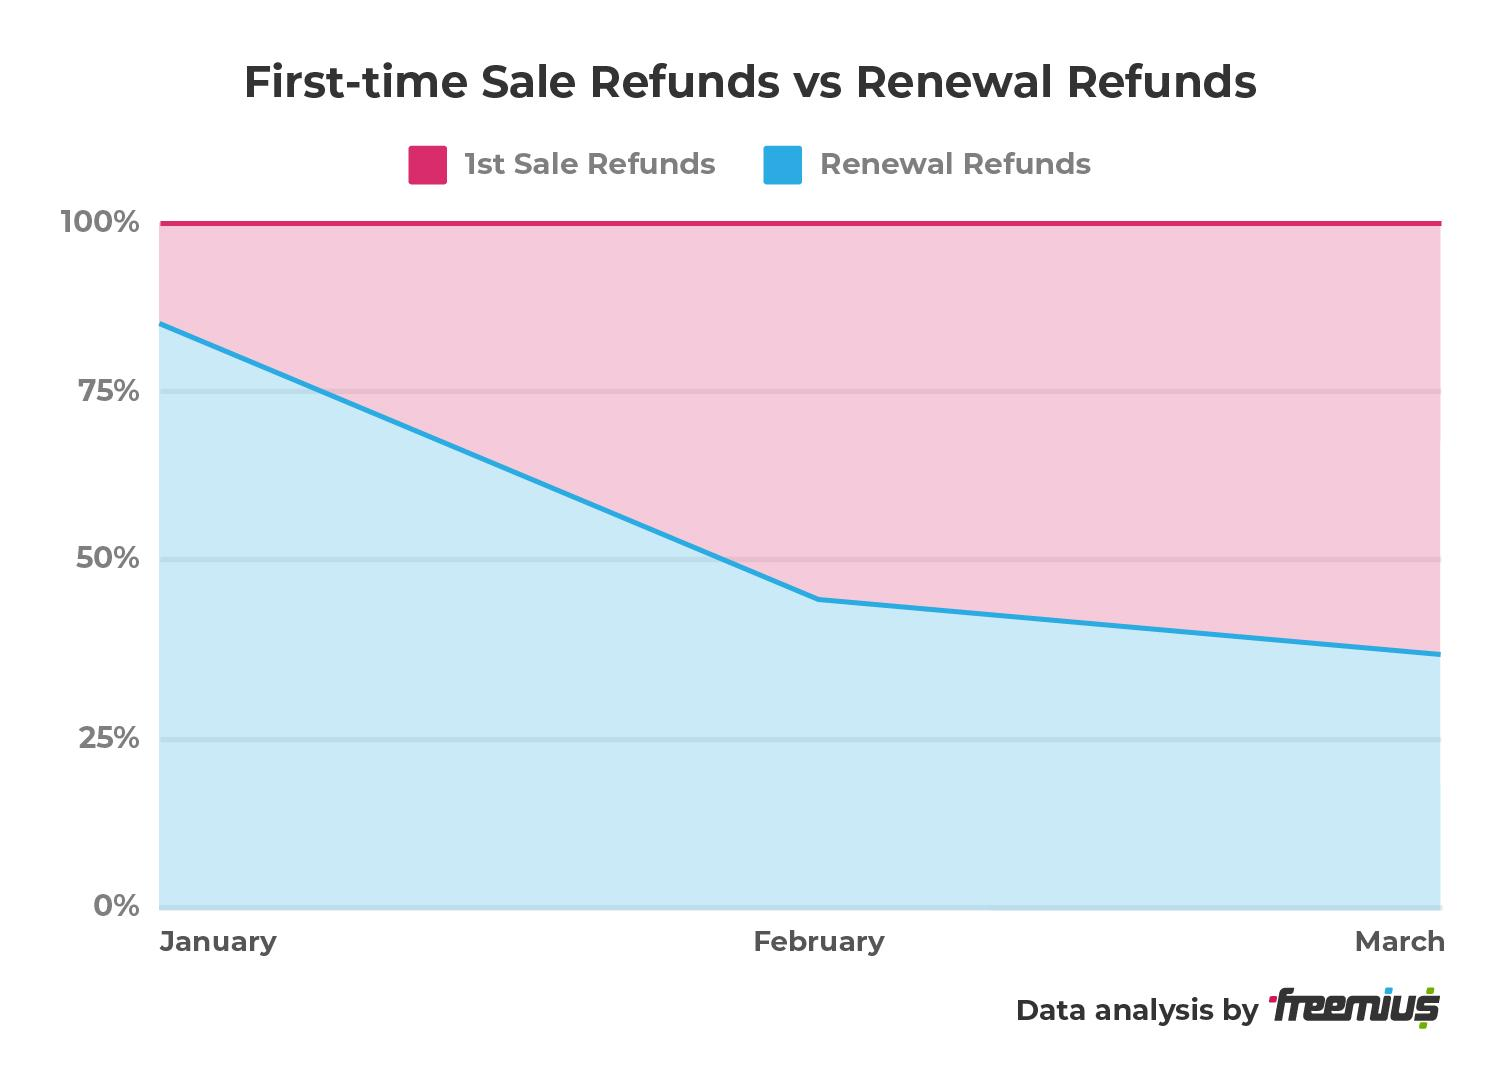 Freemius data analysis - First-time Sale Refunds vs Renewal Refunds